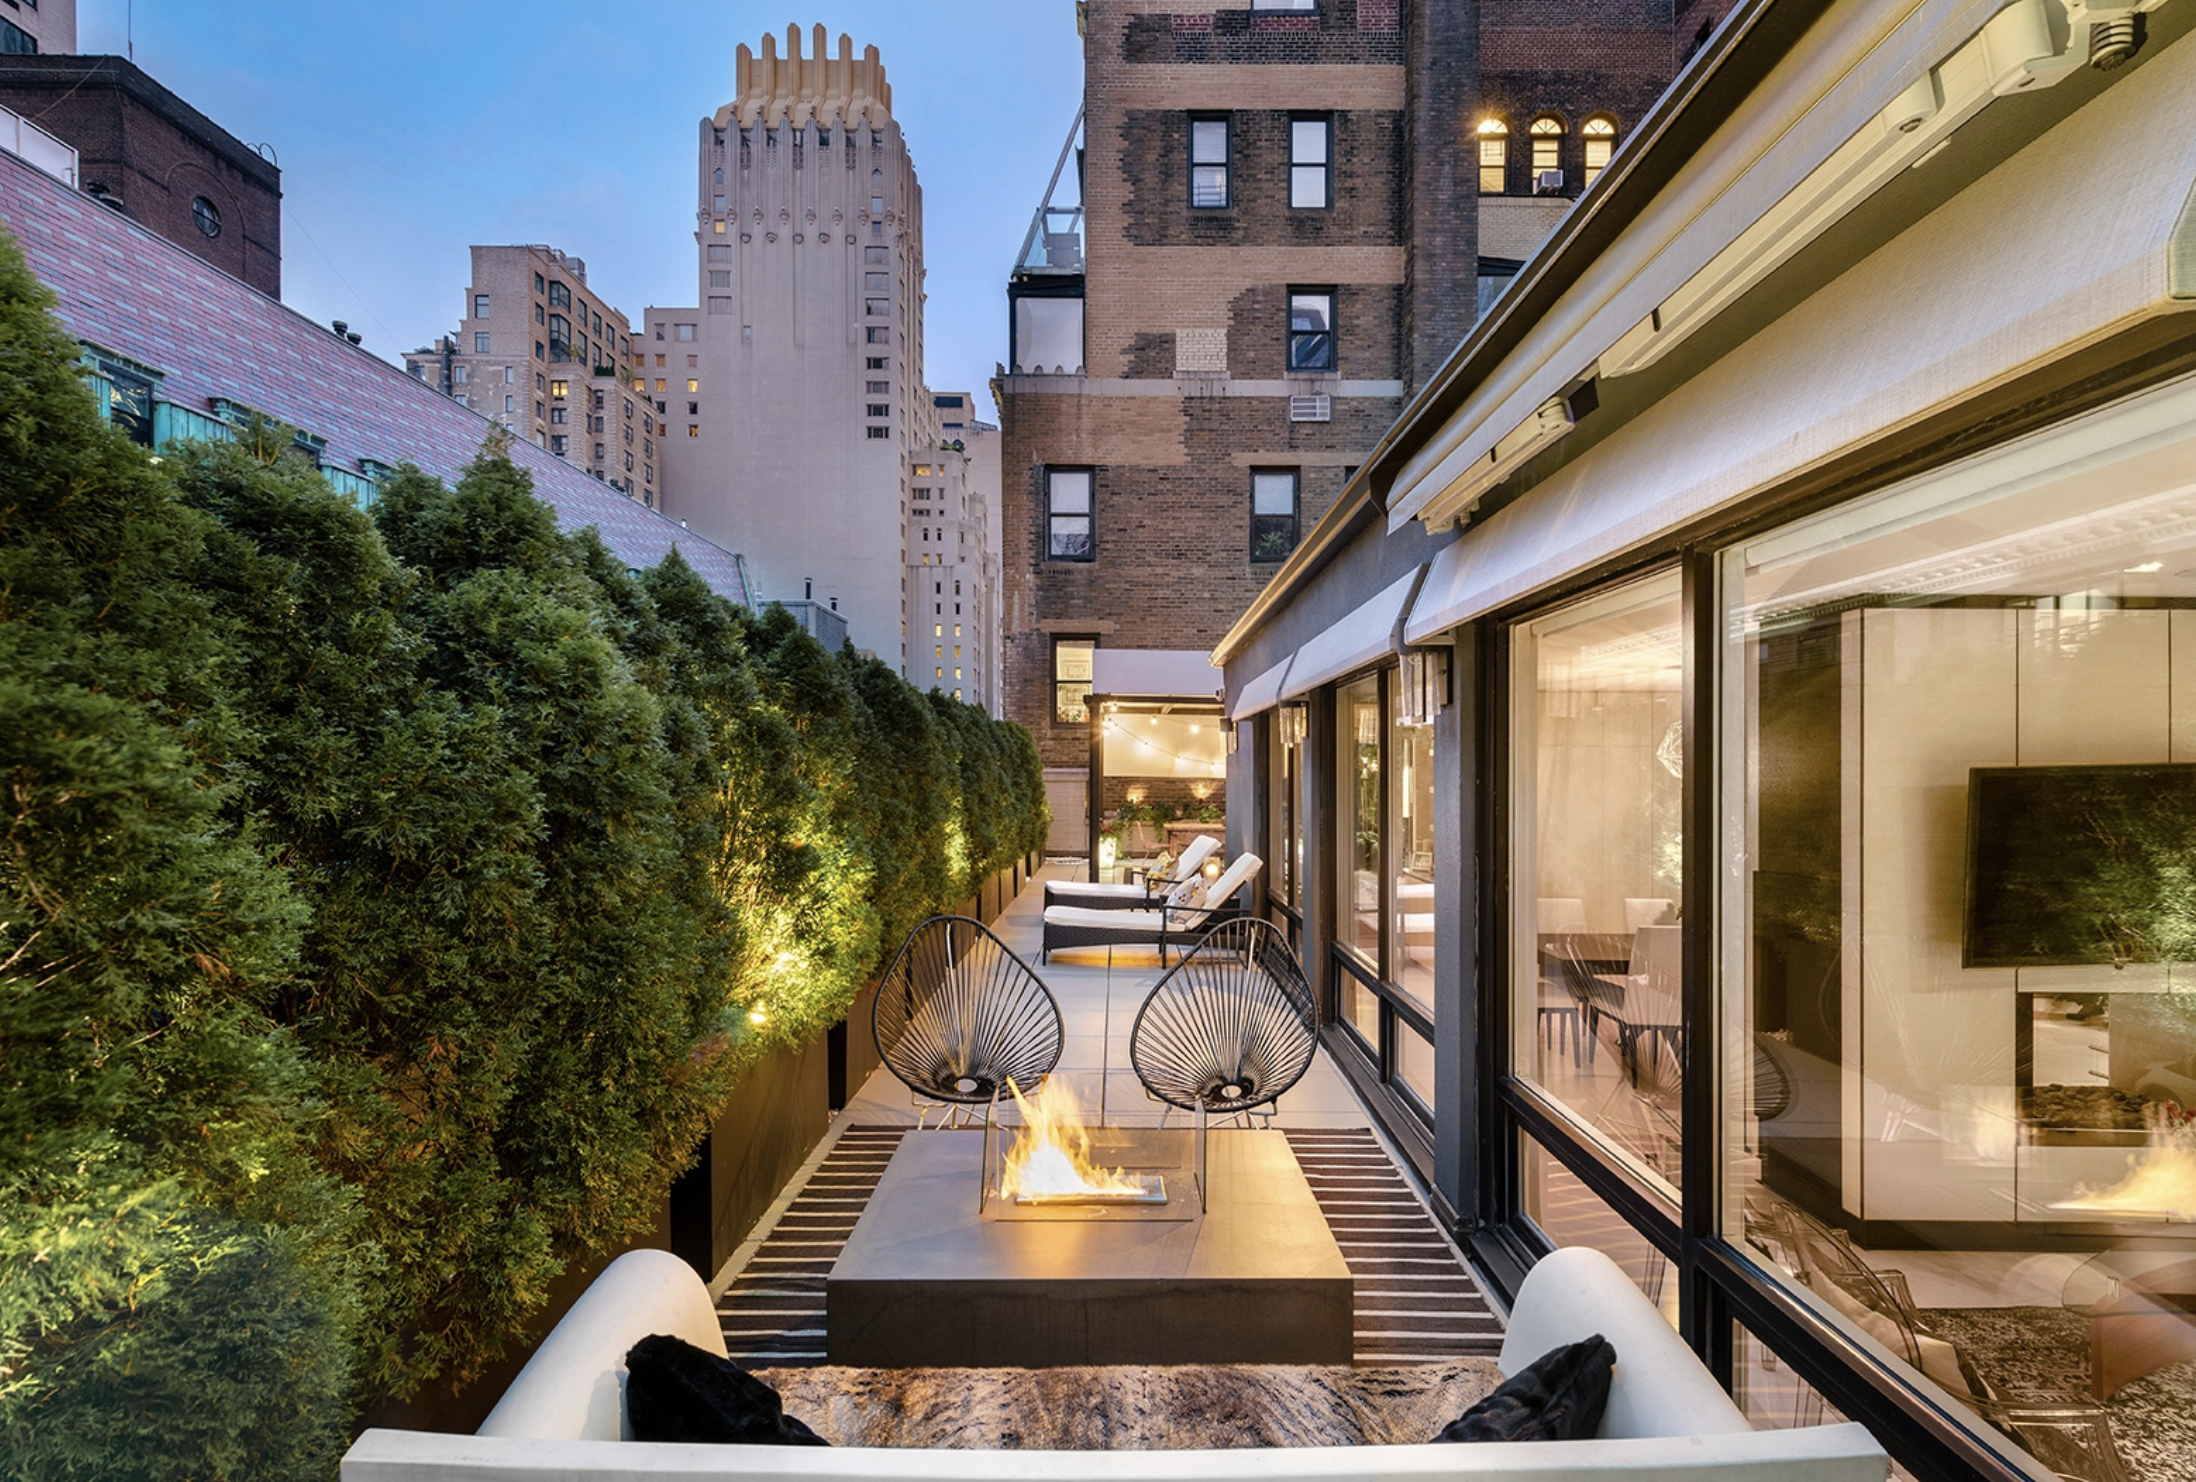 152 WEST 58TH STREET, PH1 - $2,625,000 // 3 Beds // 2 BathsThe Penthouse at 152 West 58th Street is a magnificent newly-built convertible 3-bedroom apartment, with grand interiors and a MASSIVE, one-of-a-kind approximately 2,000 square foot private terrace with iconic 360-degree city views.